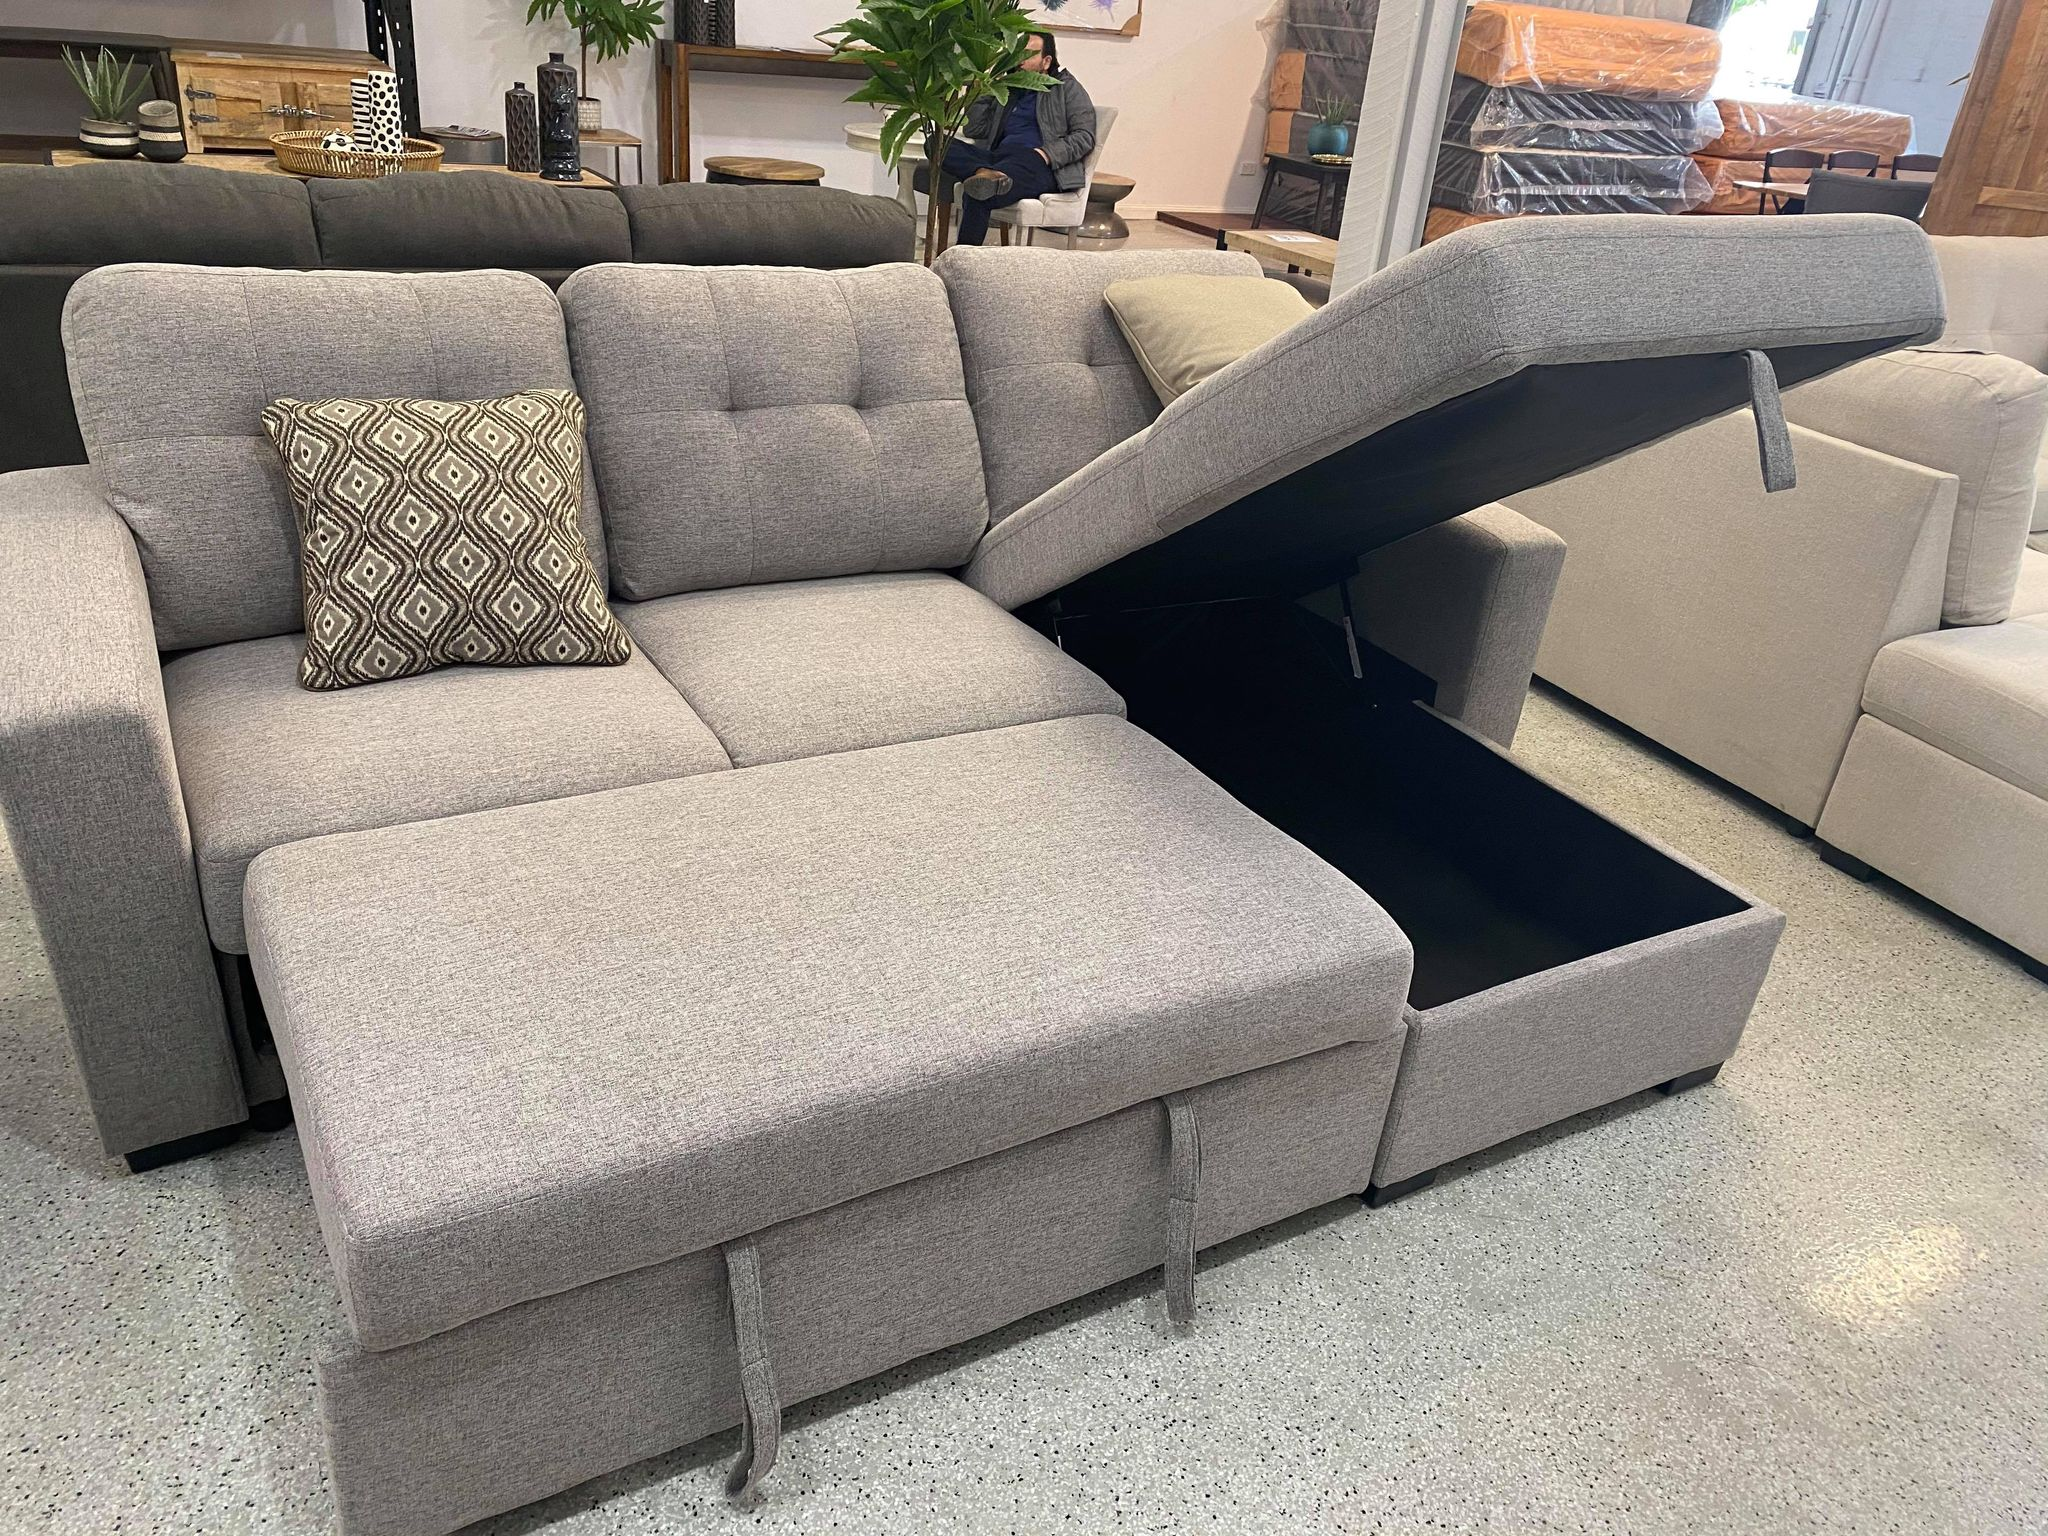 Sofa Bed Lounges Sofas Available Now Sofa Lounges For Sale